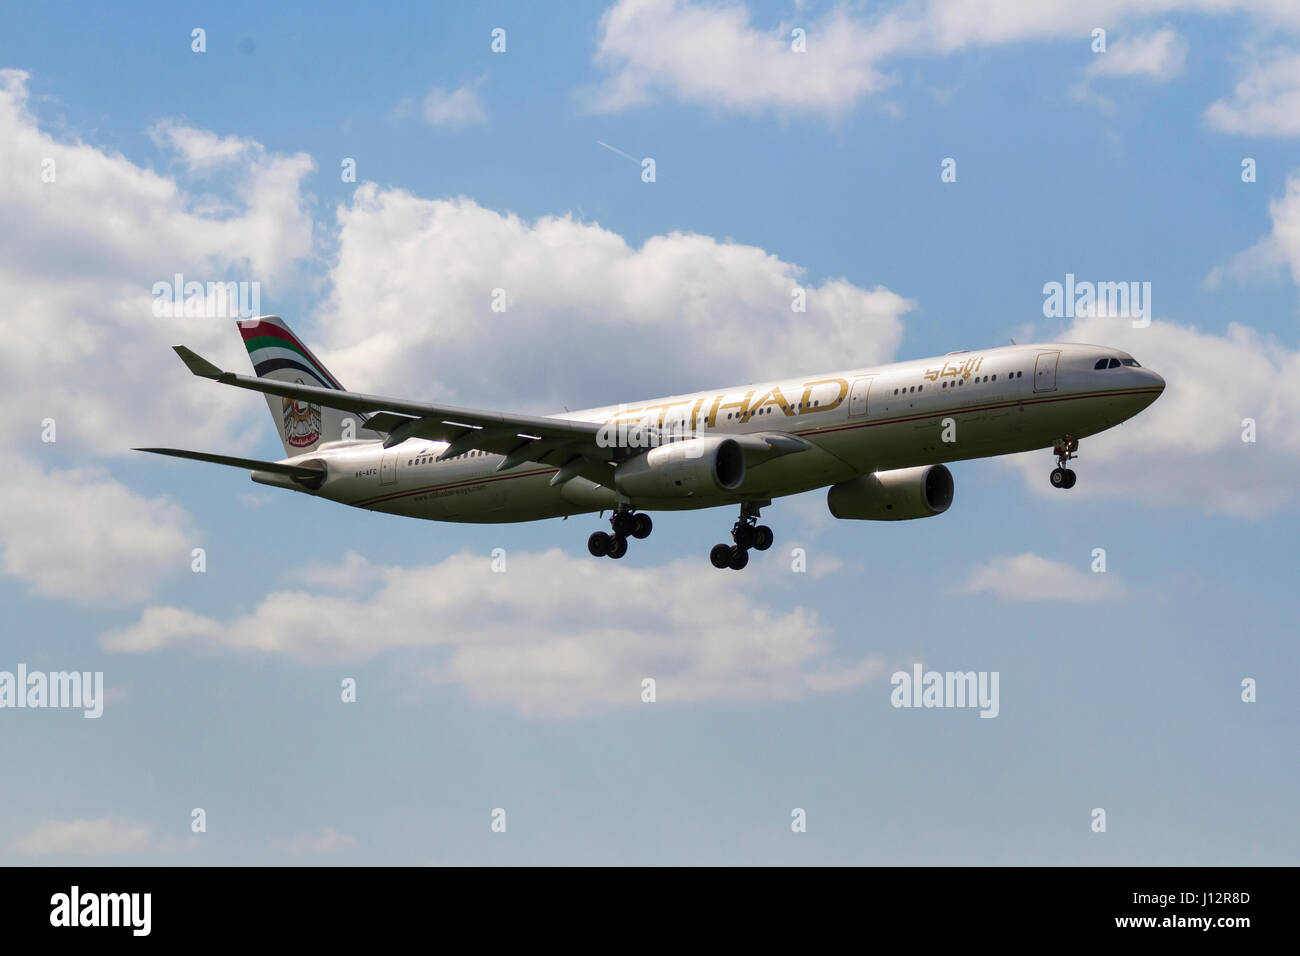 Etihad Airways A330 coming in to land at Manchester Aiport - Stock Image